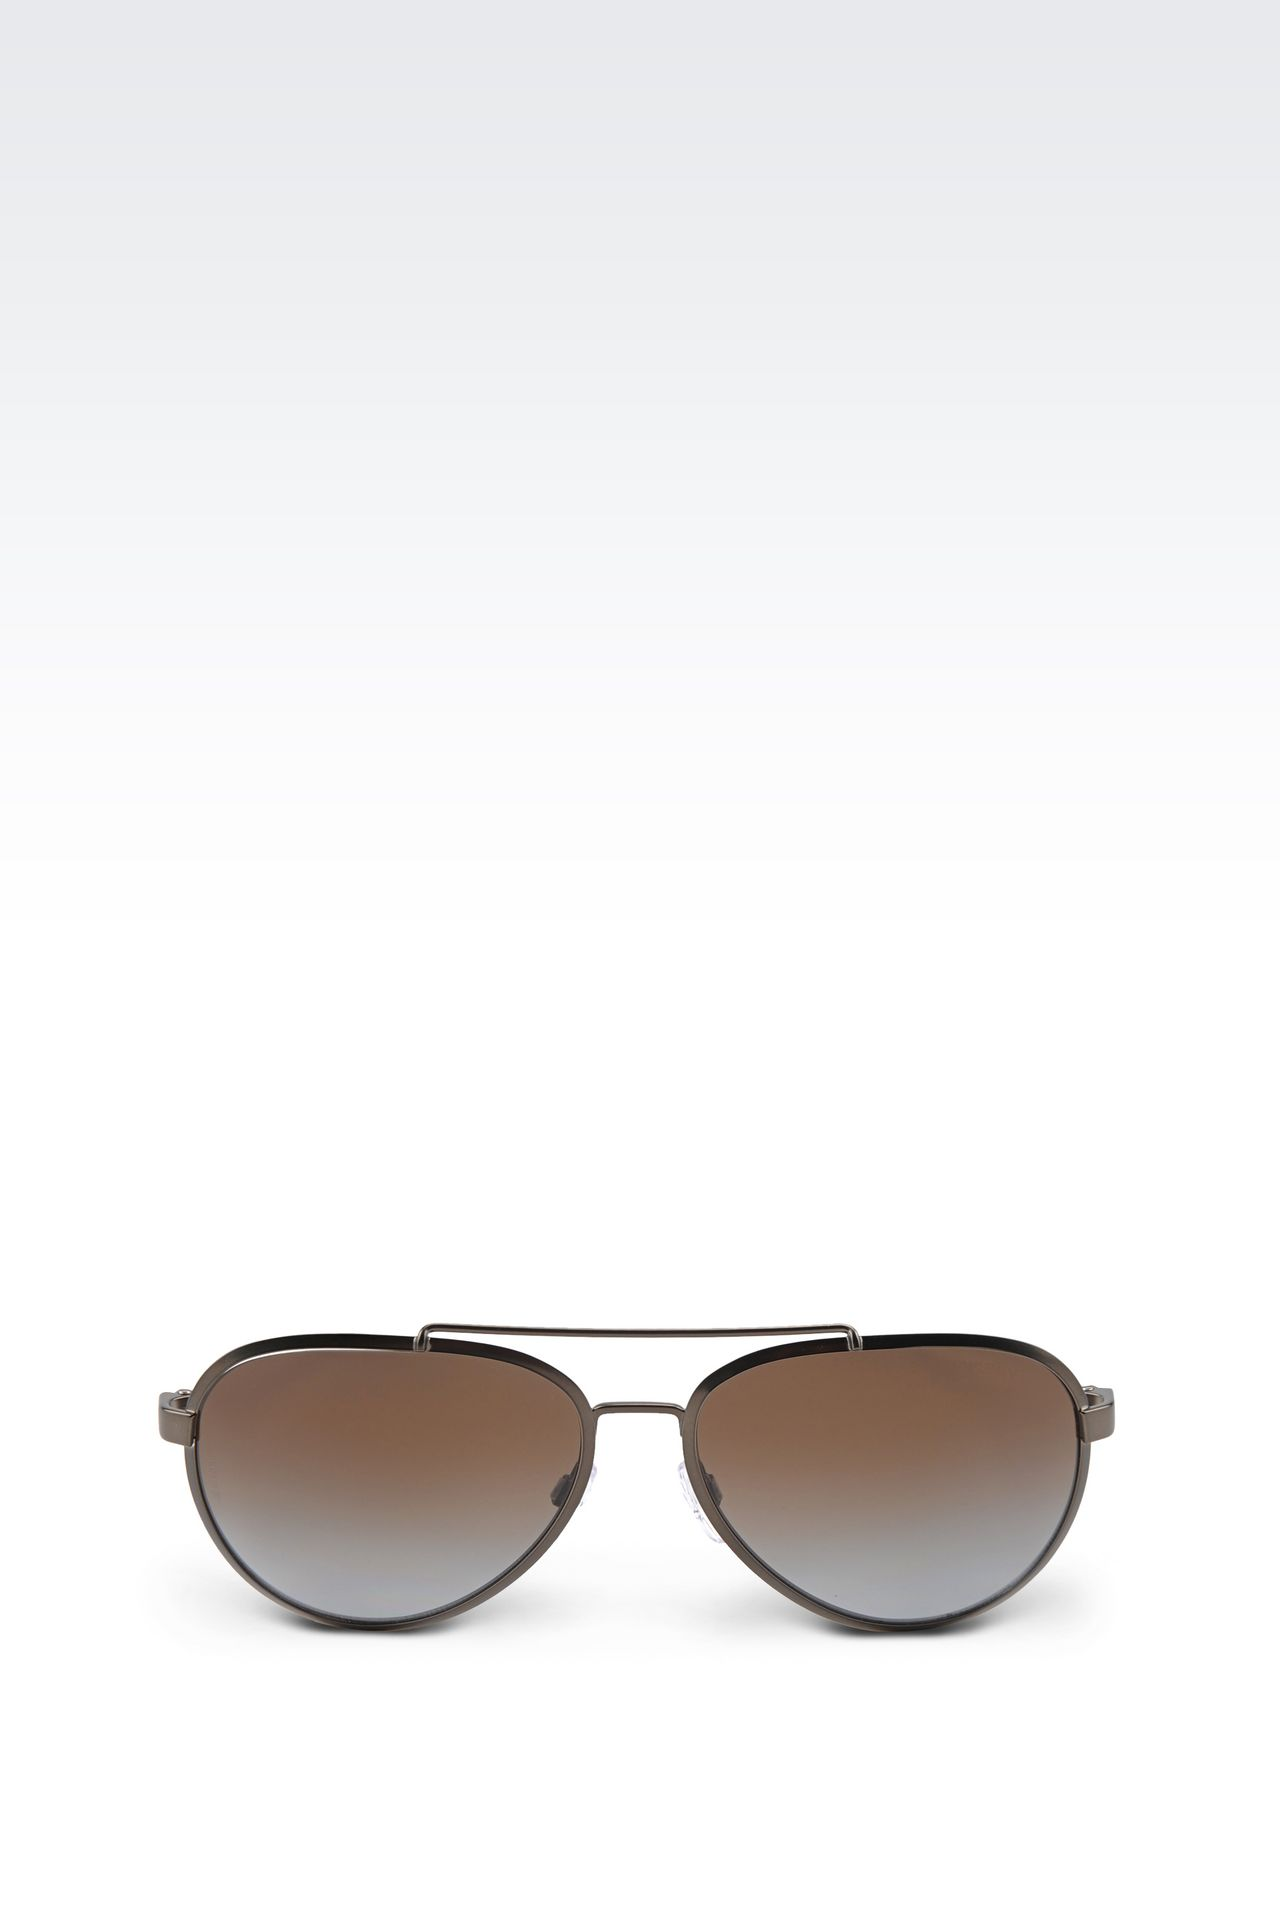 aviator frame glasses  metallic/plastic frame